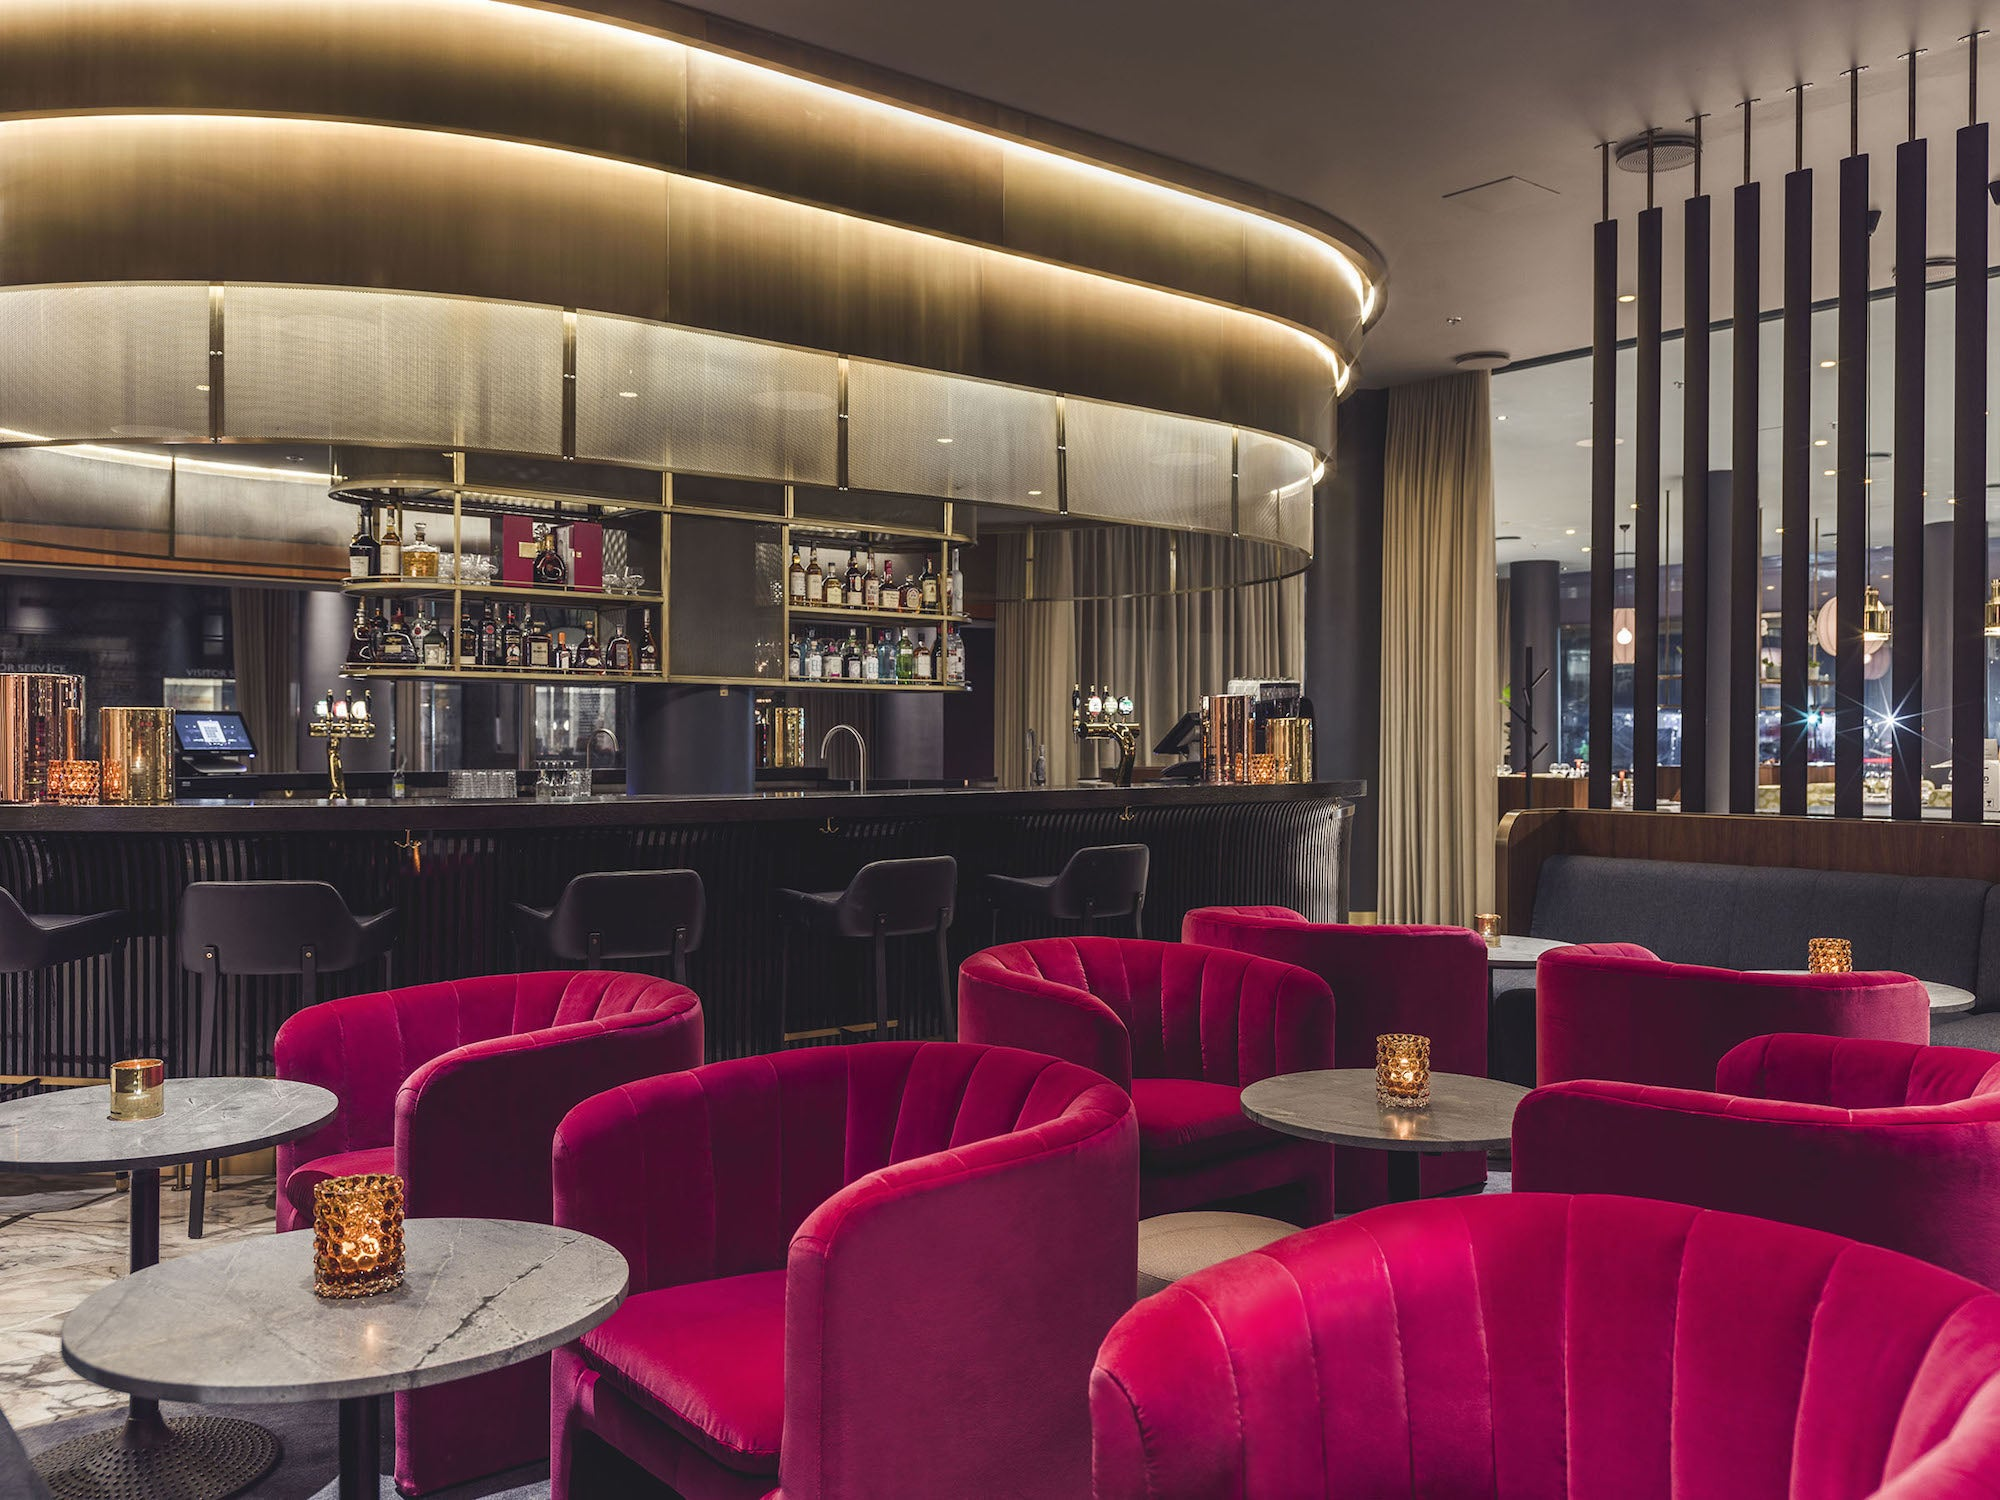 The Café Royal bar of the Radisson Blu Royal Hotel in Copenhagen designed by Arne Jacobsen